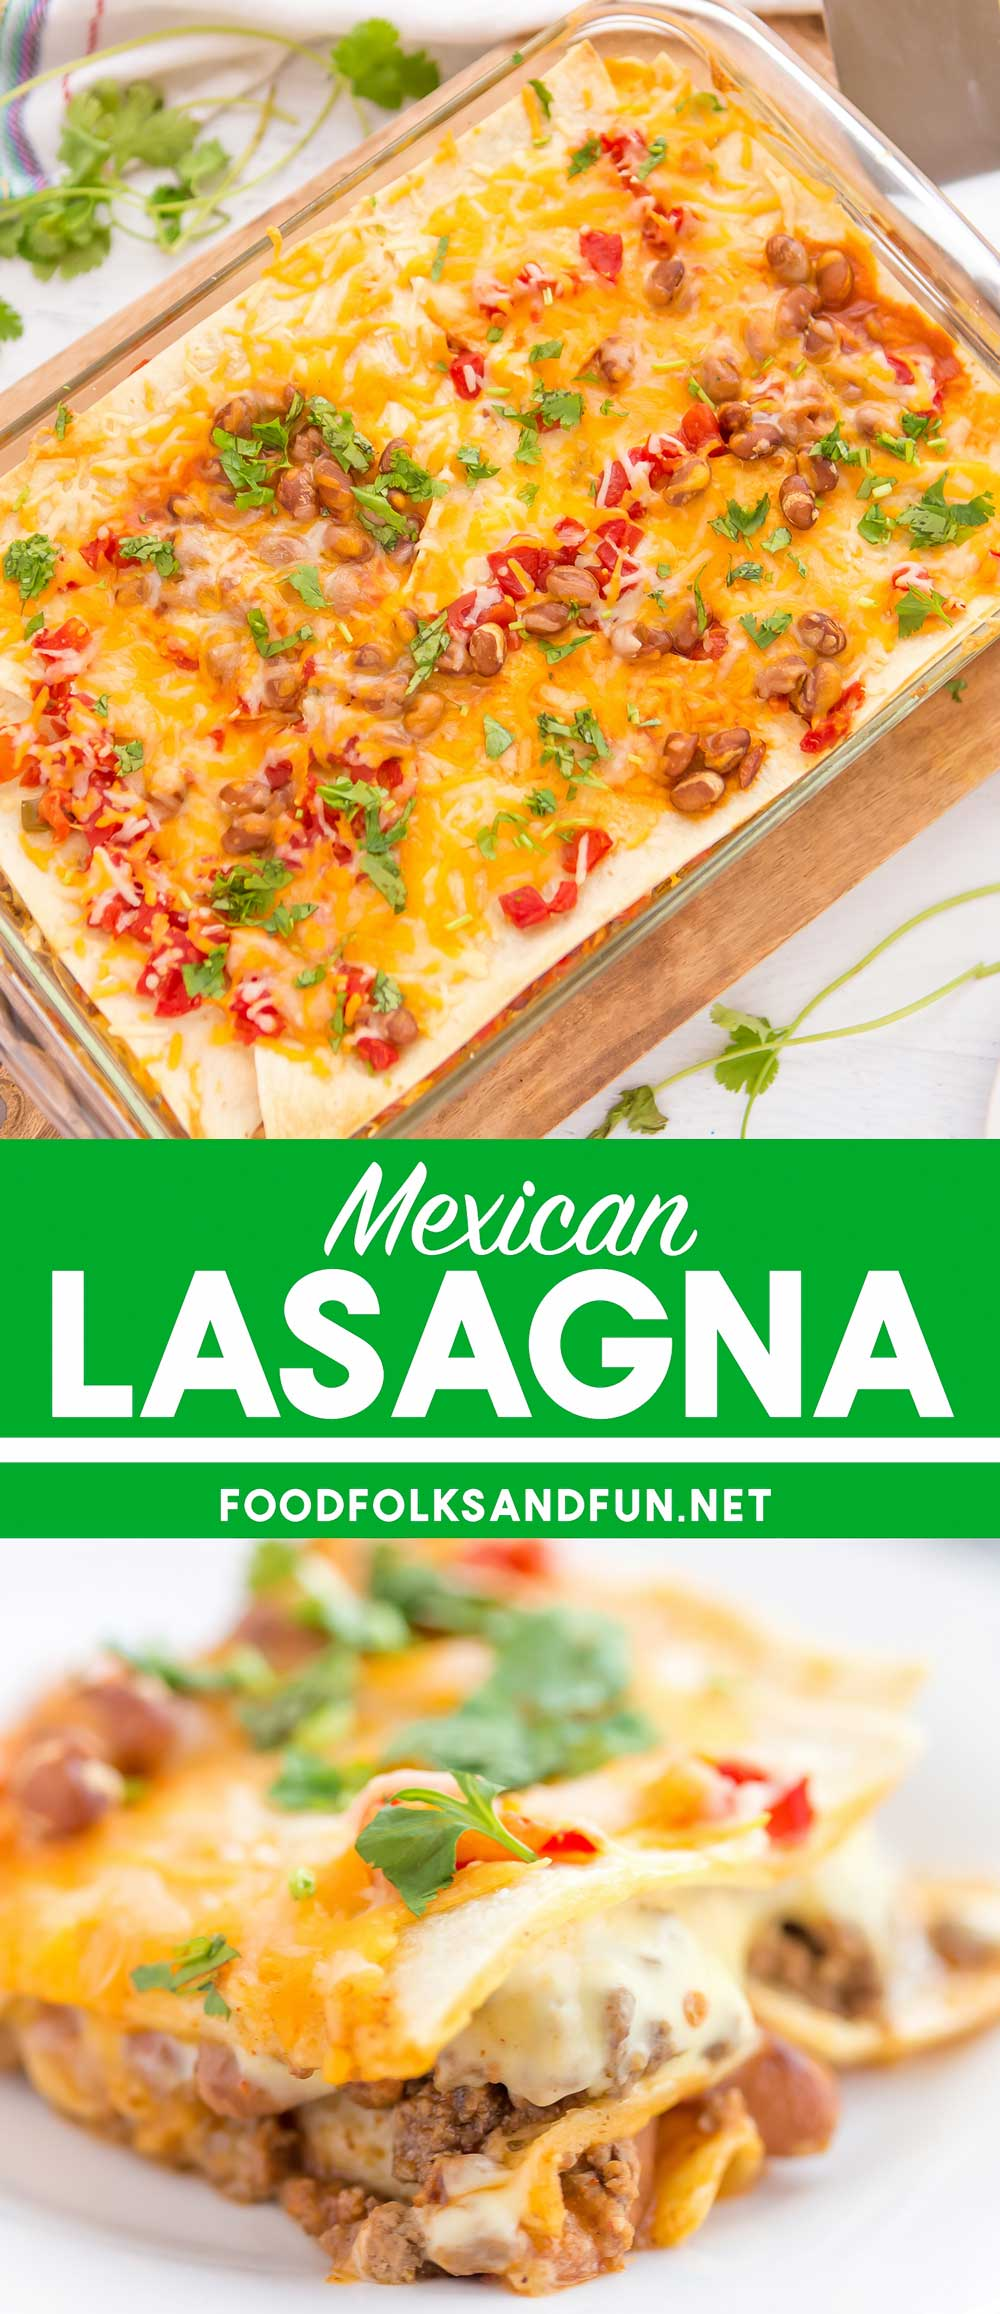 Collage of Mexican lasagna with text overlay for Pinterest